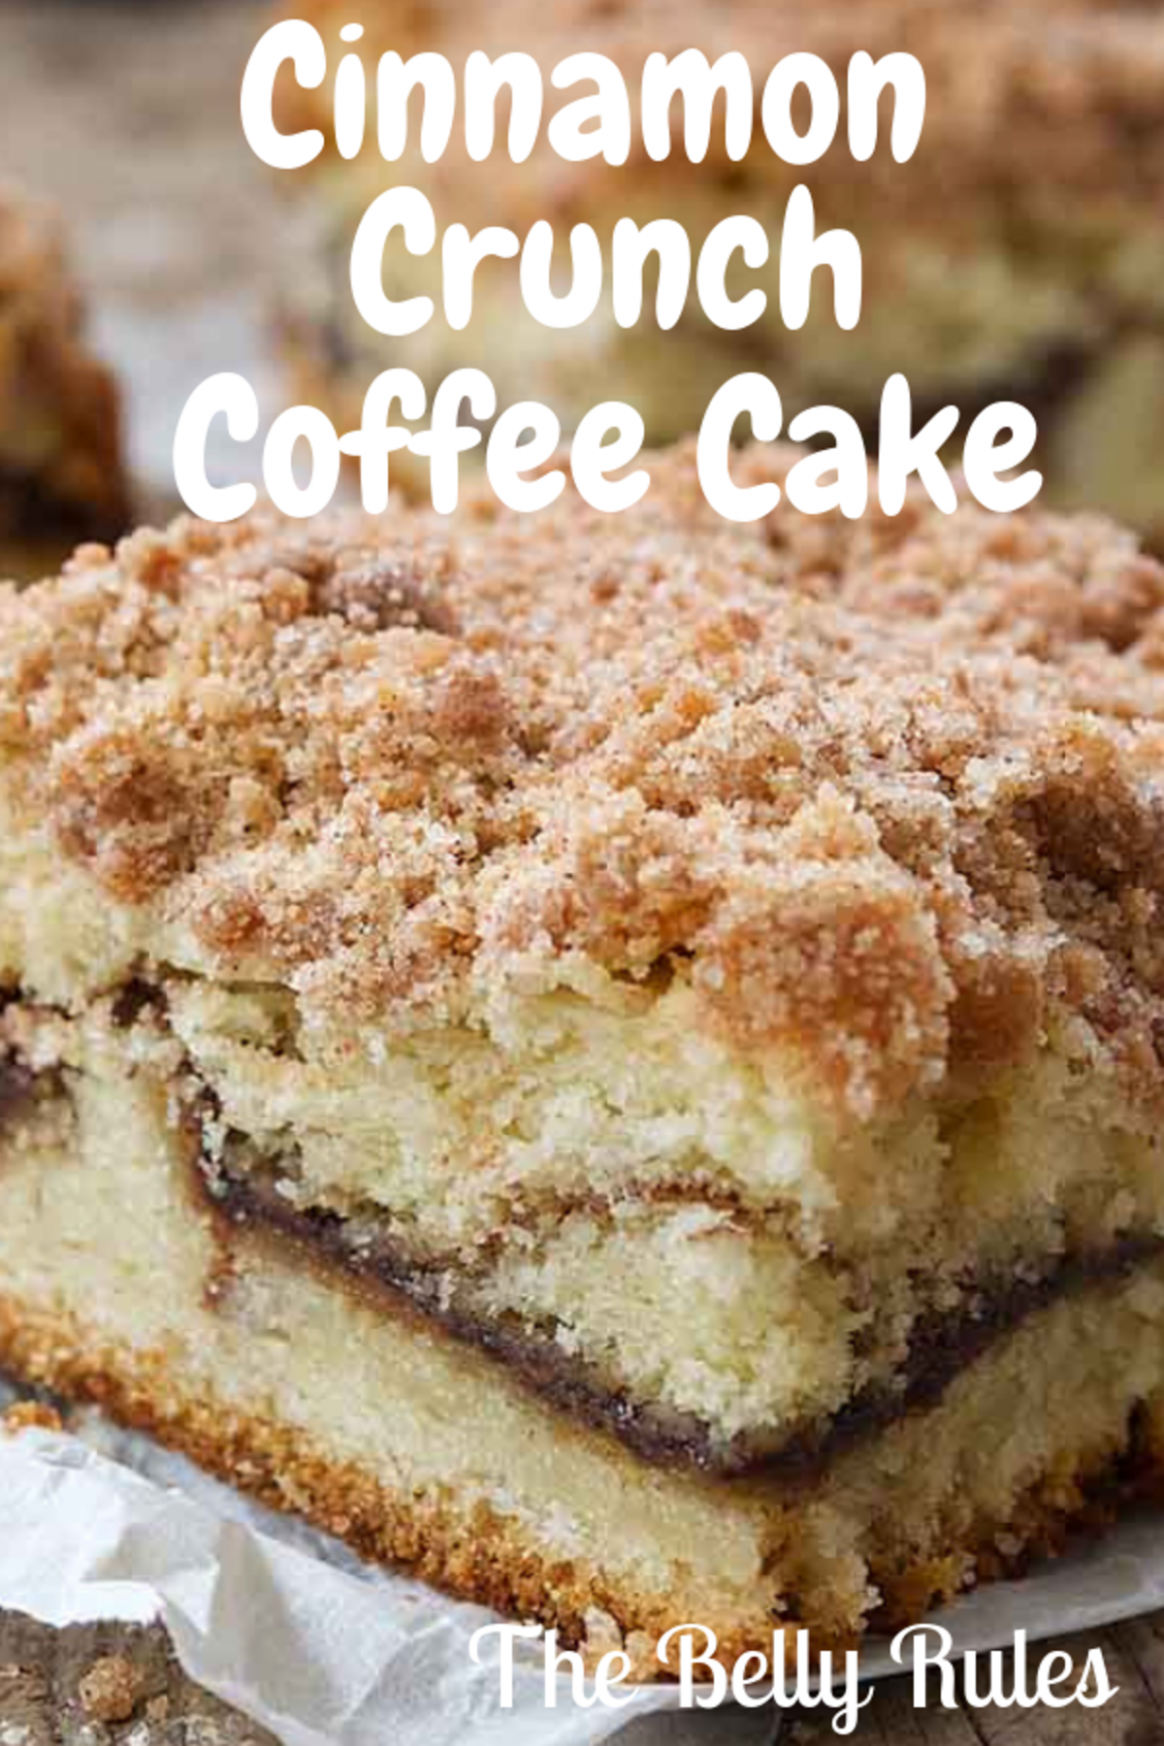 Cinnamon Crunch Coffee Cake - Cake Recipes Pinterest